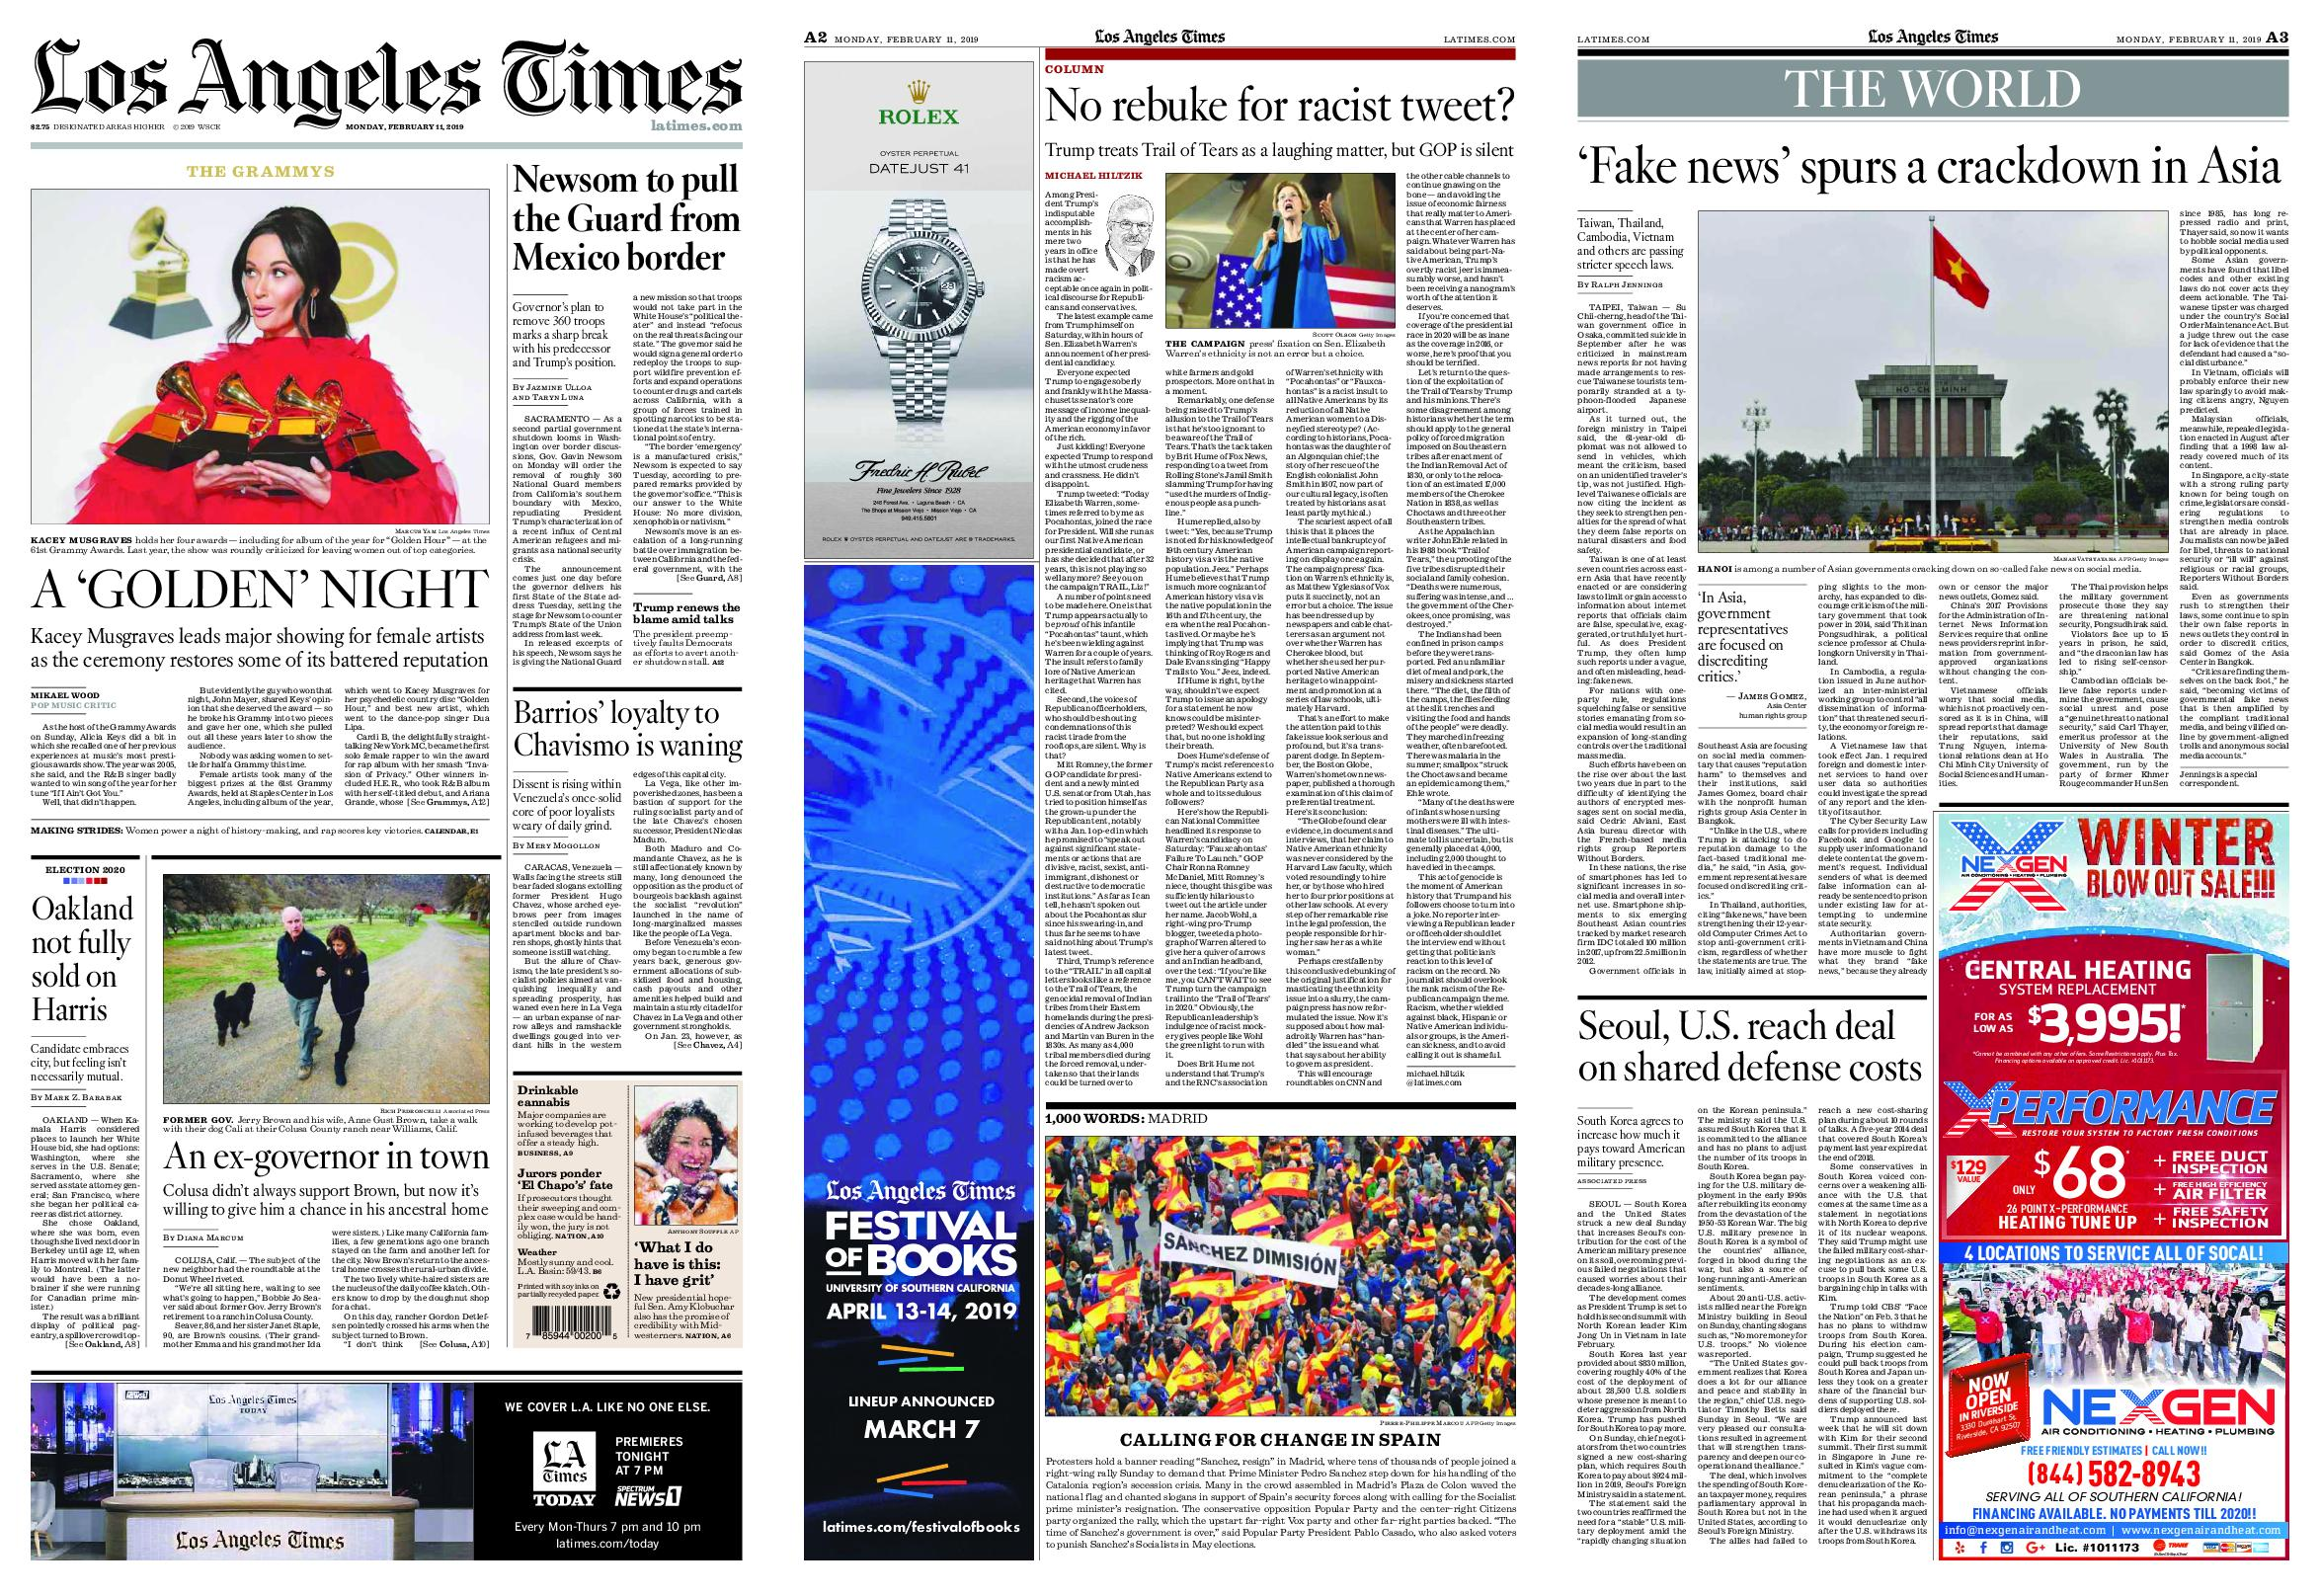 Los Angeles Times – February 11, 2019